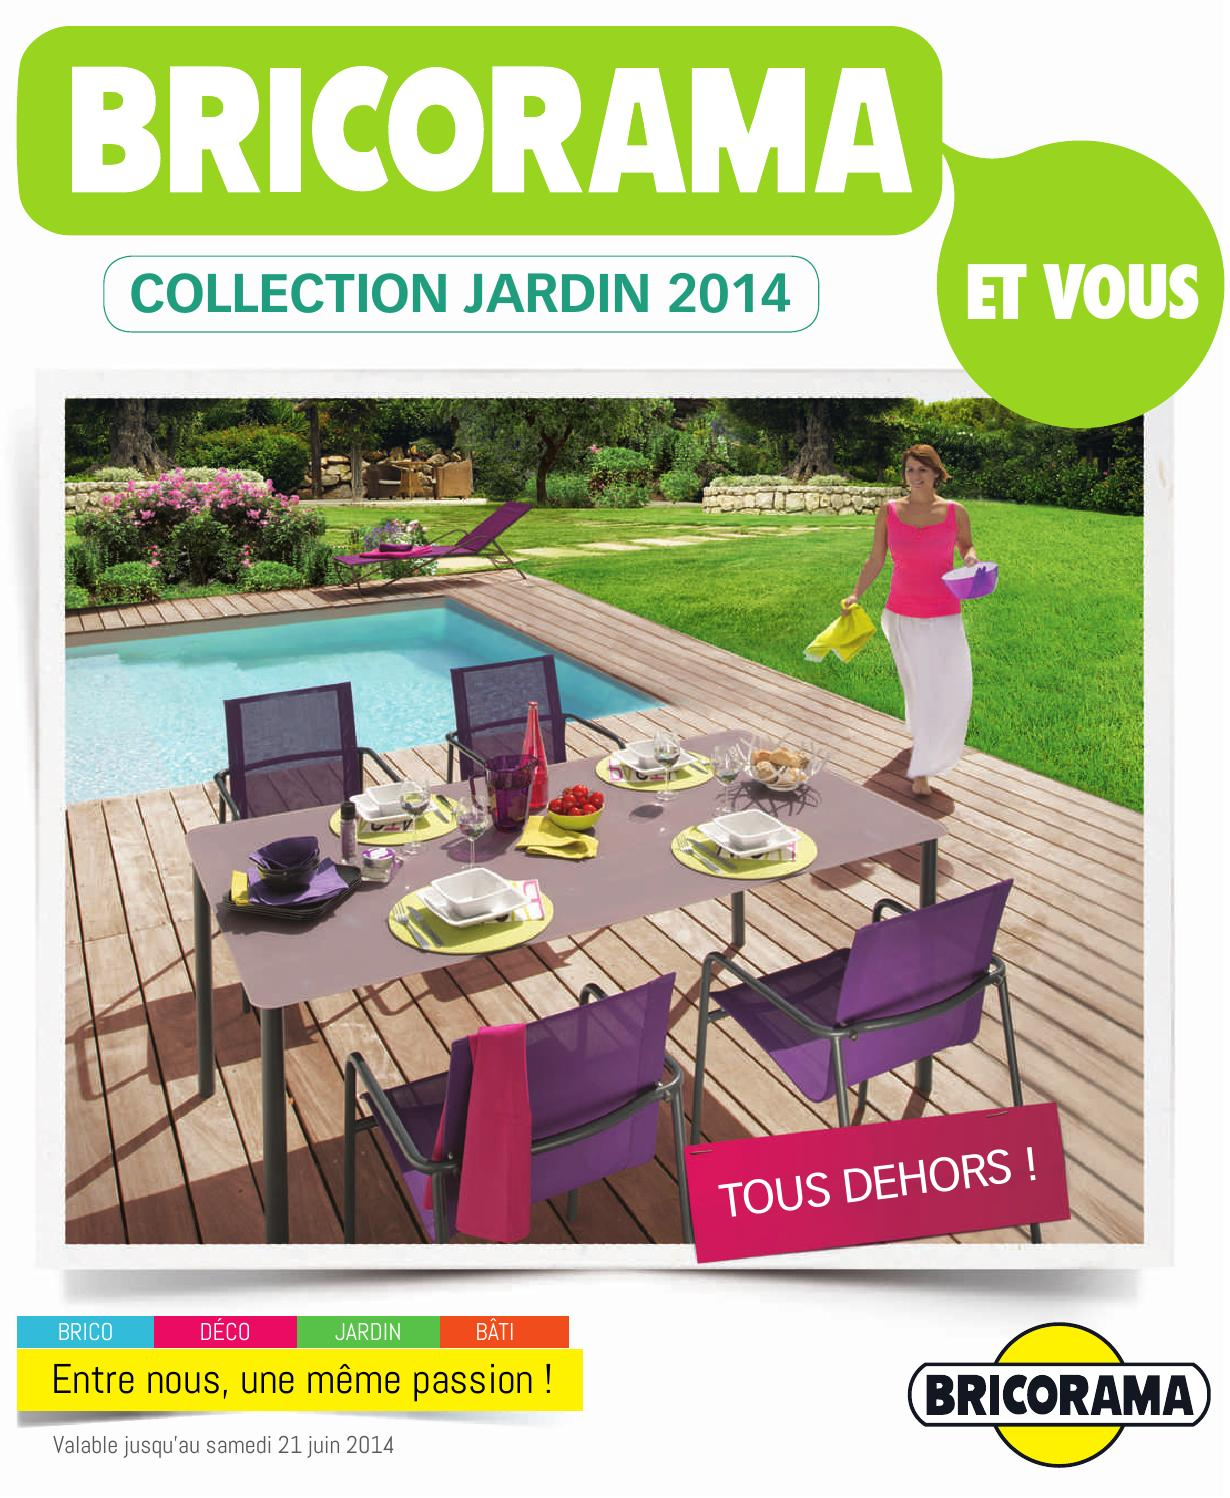 Eclairage Exterieur Bricorama Bricorama Catalogue 12mars 21june2014